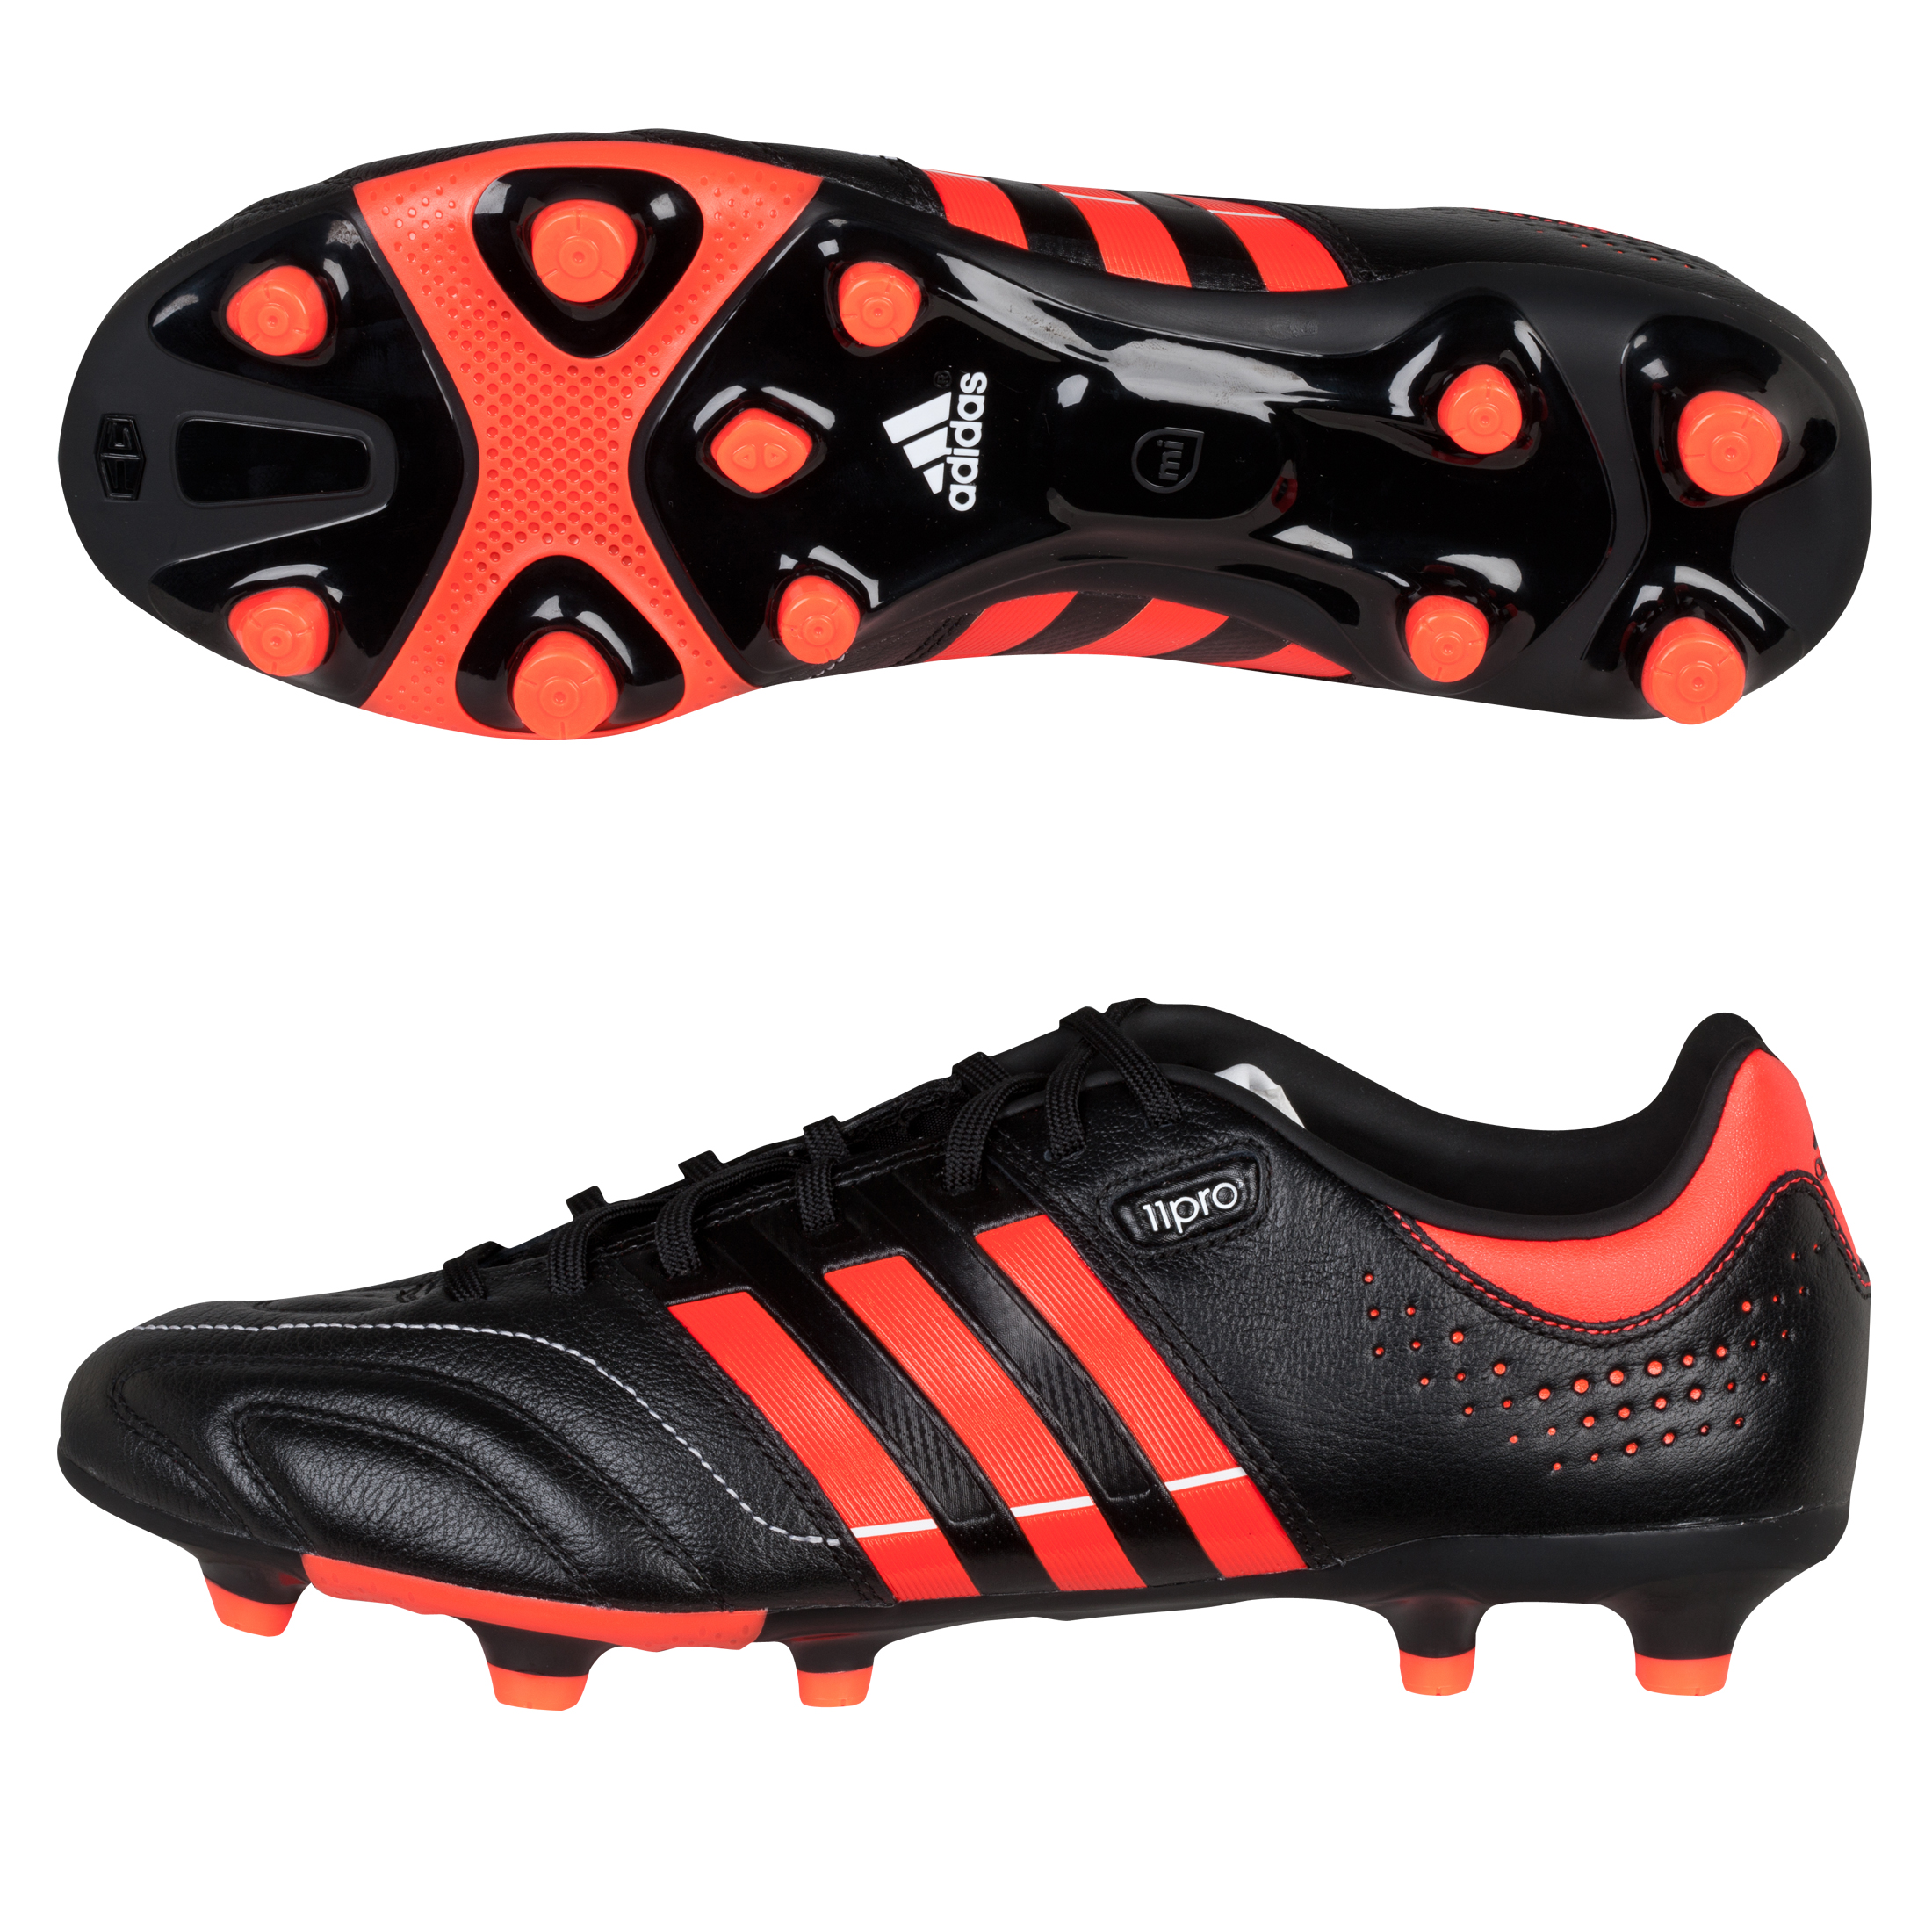 Adidas 11Core TRX Firm Ground Football Boots - Black/Infrared/Running White